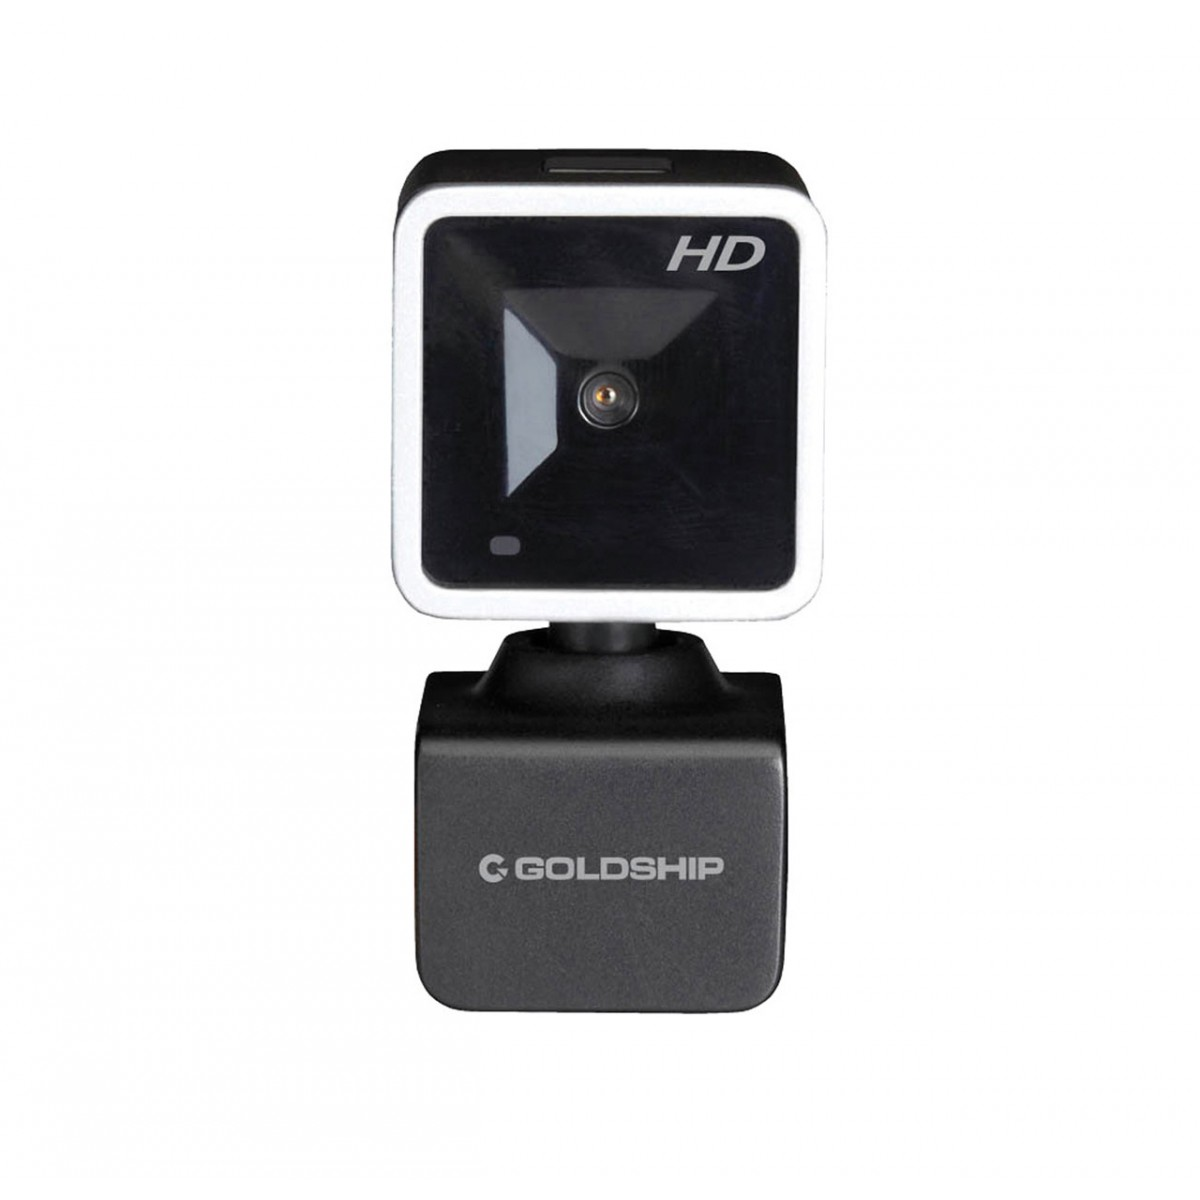 Webcam HD Resolusao Maxima 720p 3808 - Leadership